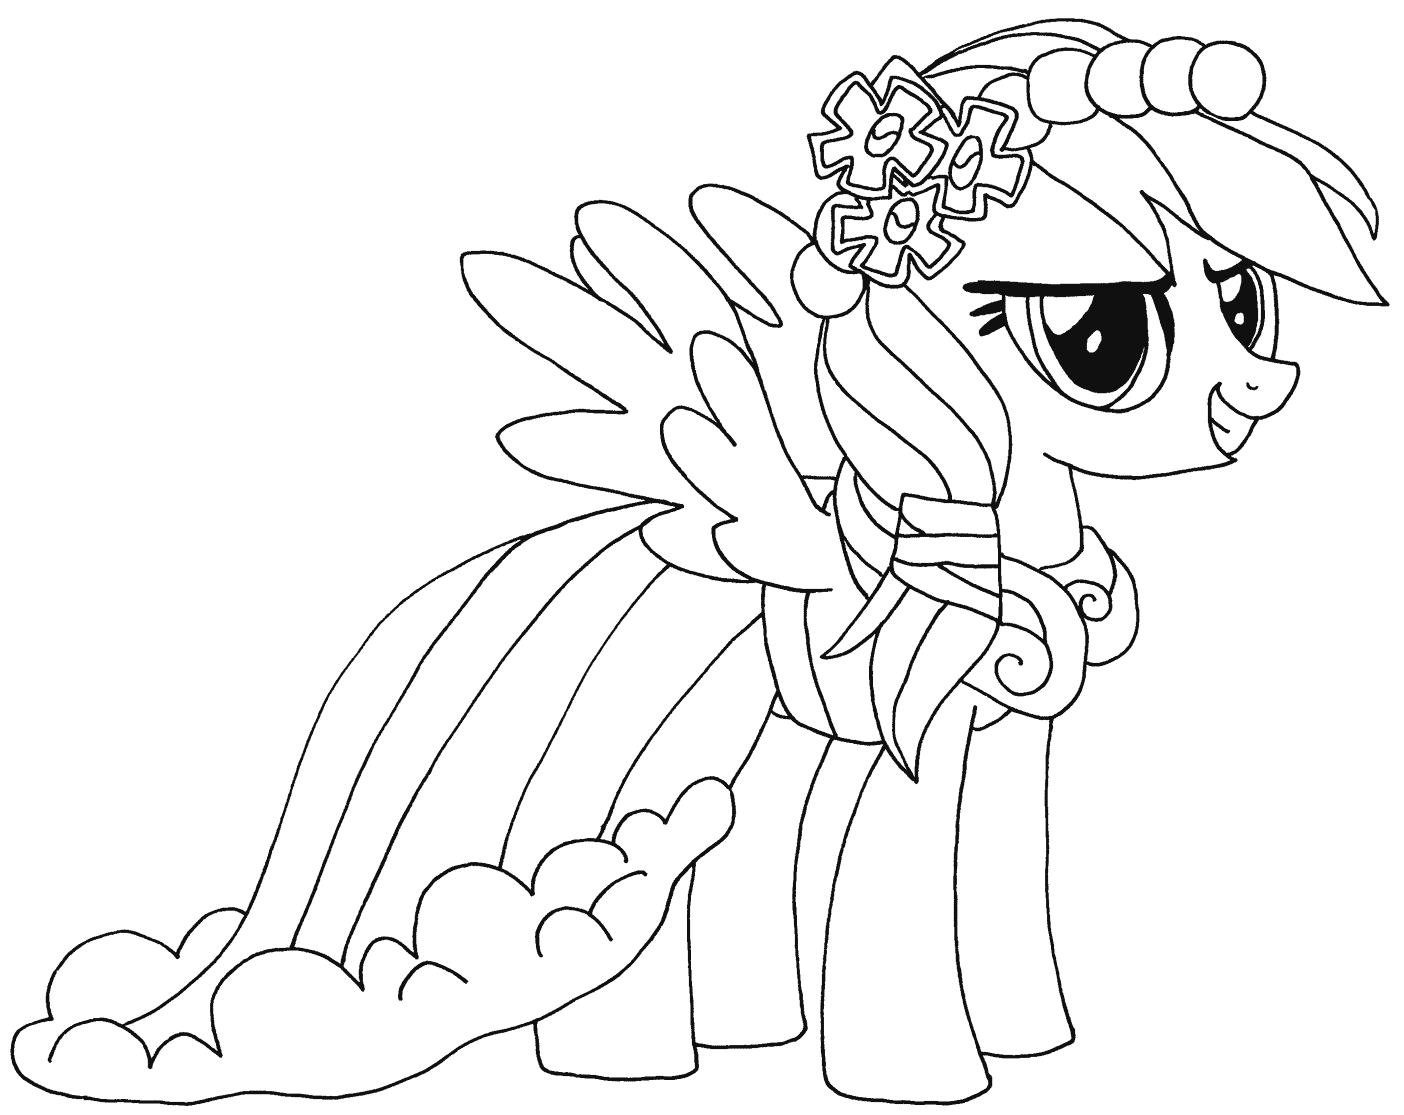 coloring pages rainbow dash rainbow dash coloring pages to download and print for free rainbow coloring pages dash